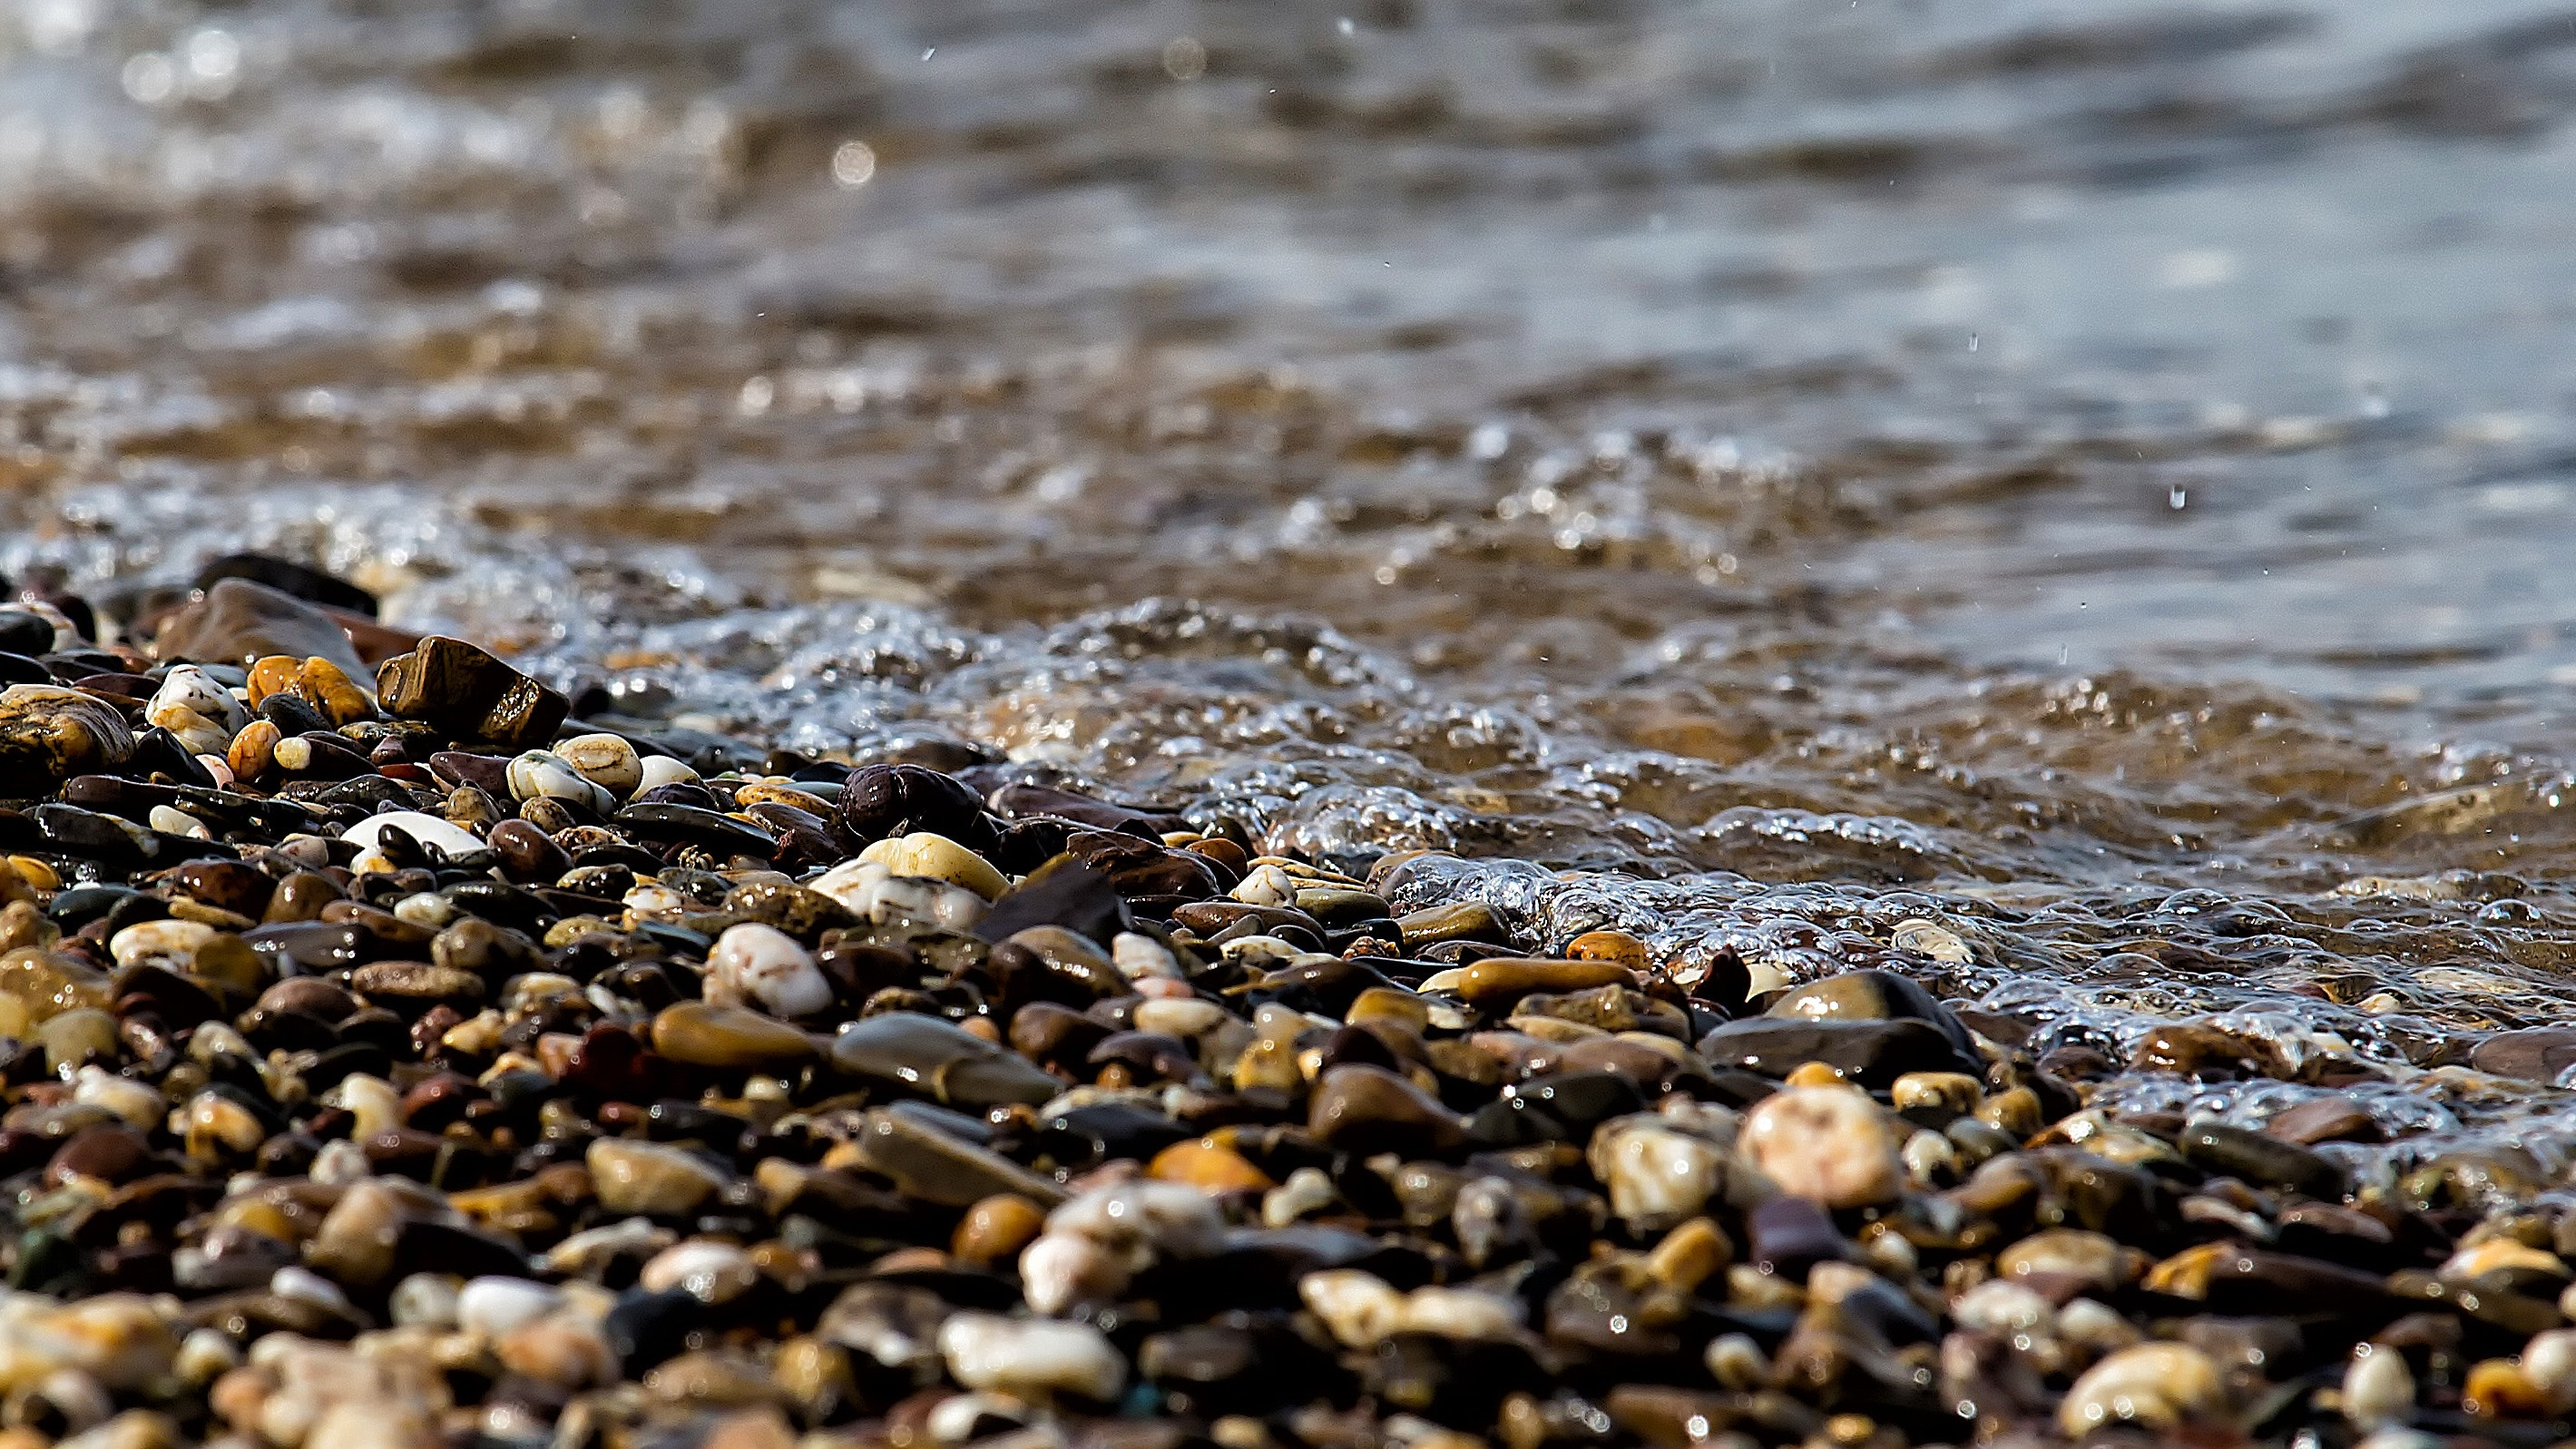 Stones Near the Beach Seashore during Day Time, Stones, Seaside, Water, Wave, HQ Photo